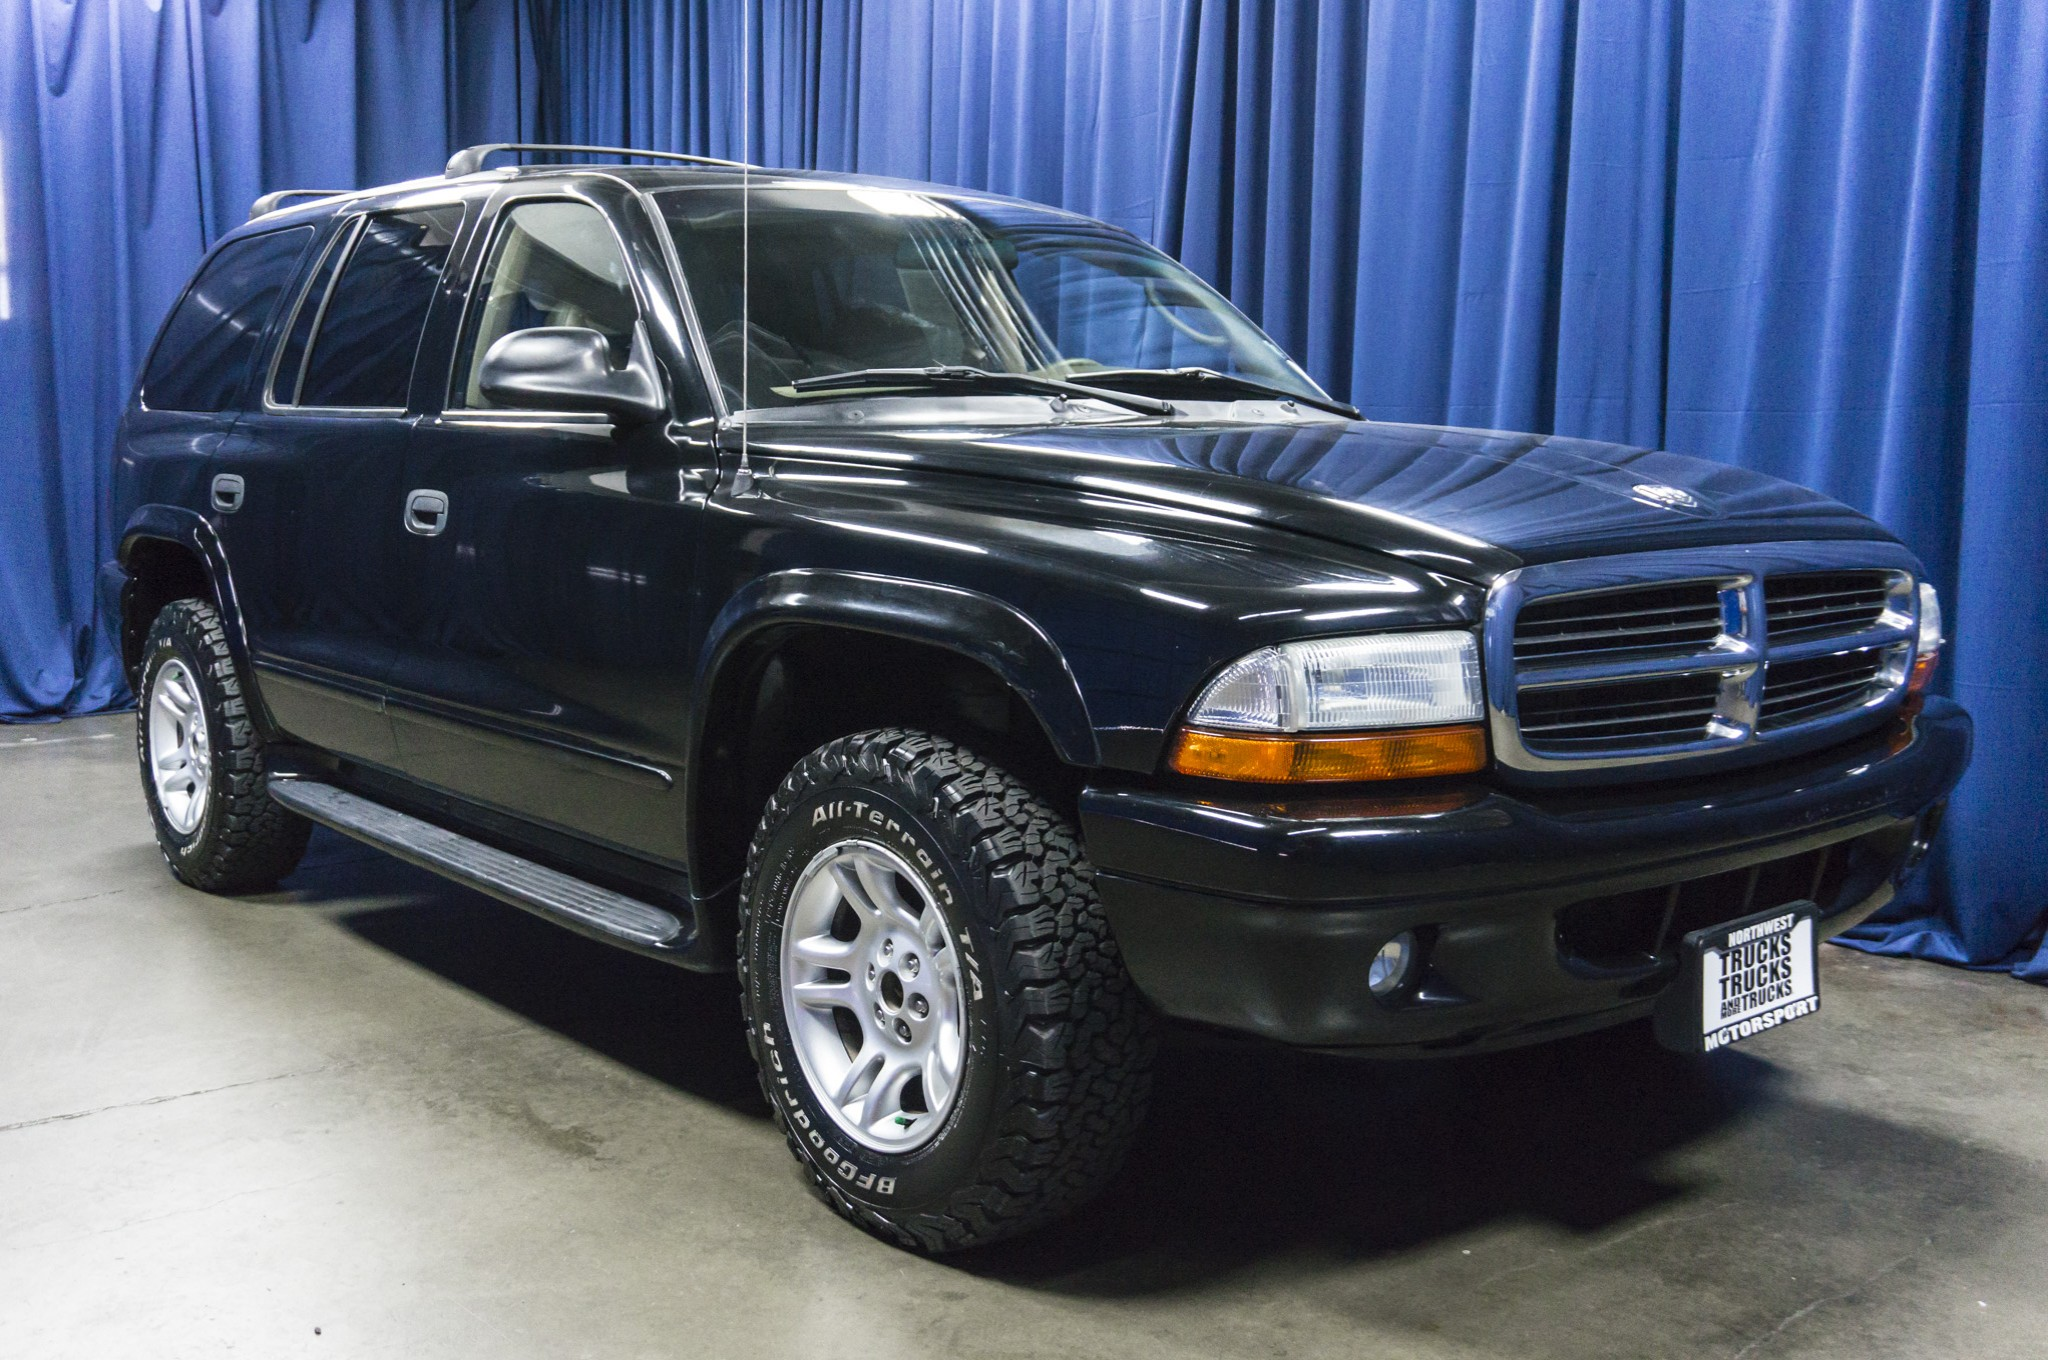 Cars With 3rd Row Seating >> Used 2003 Dodge Durango SLT 4x4 SUV For Sale - 42244A